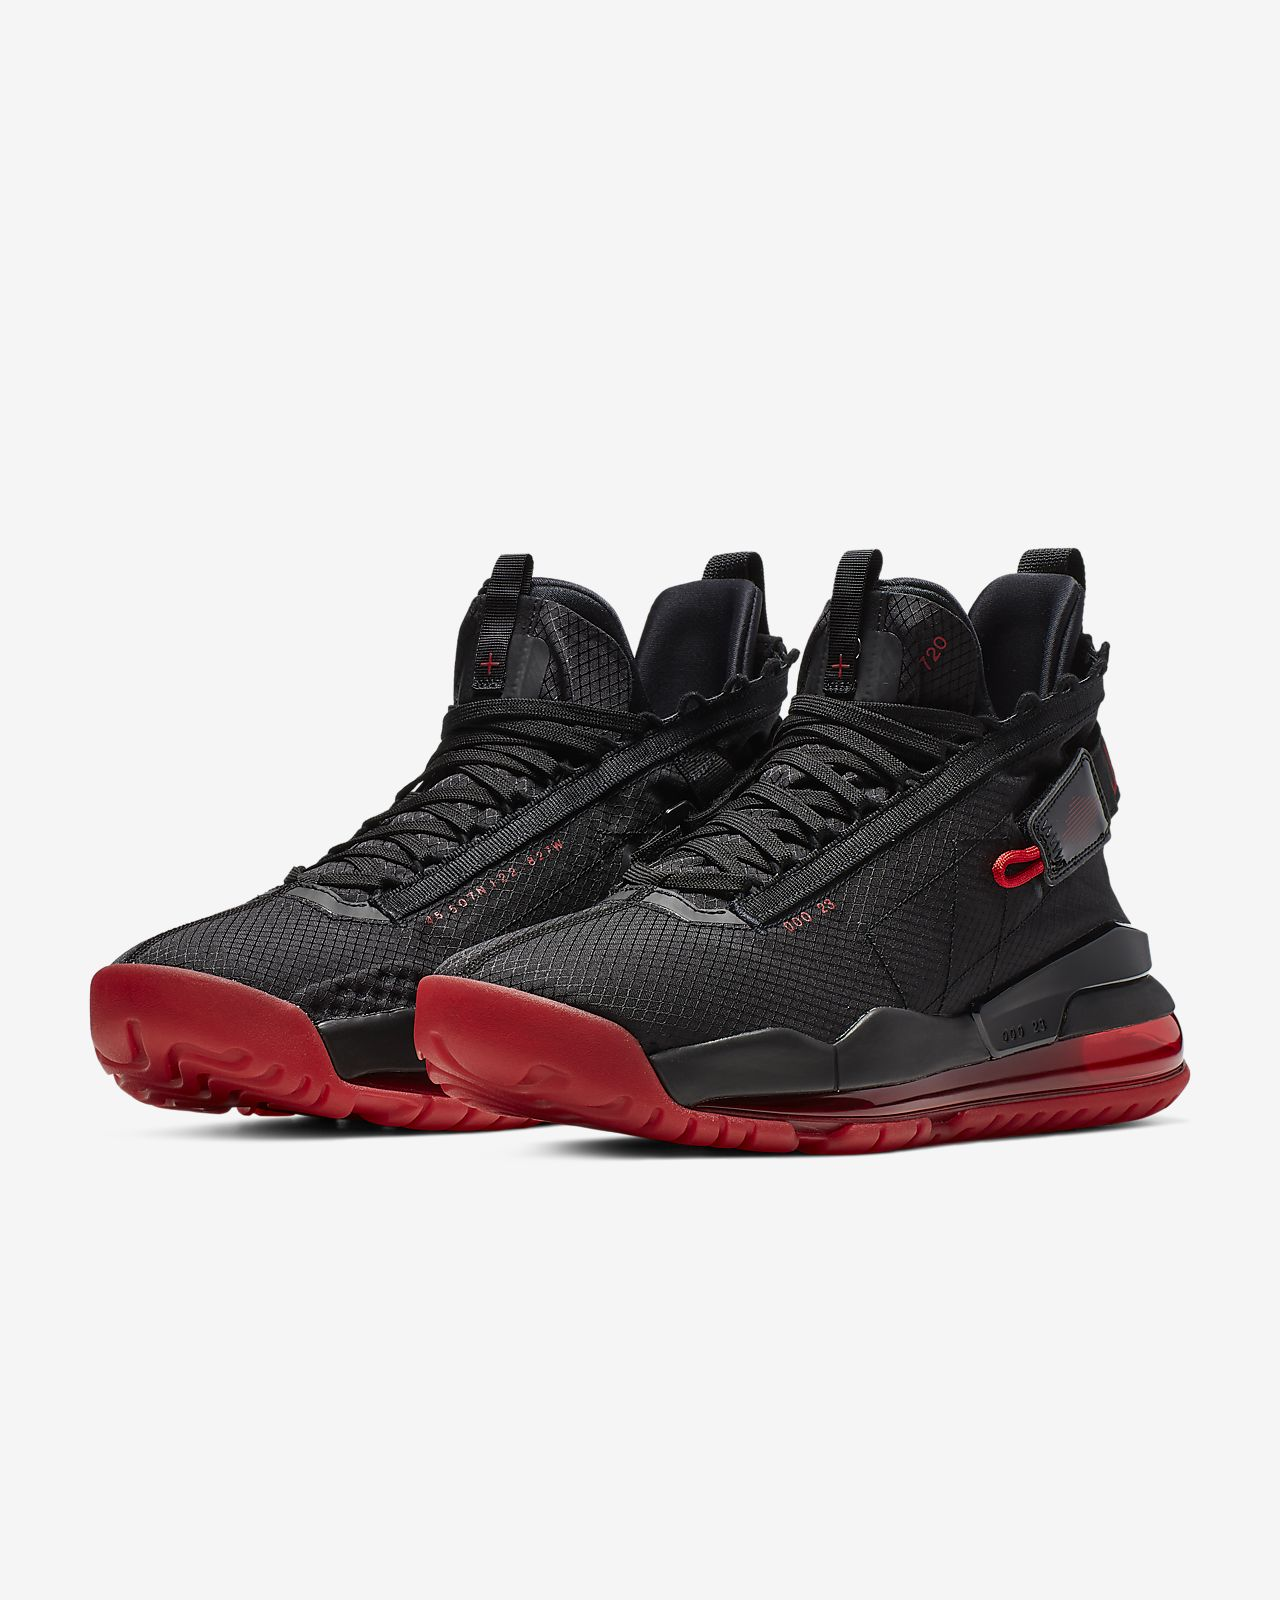 separation shoes ad1d1 10d2a ... Jordan Proto-Max 720 Men s Shoe